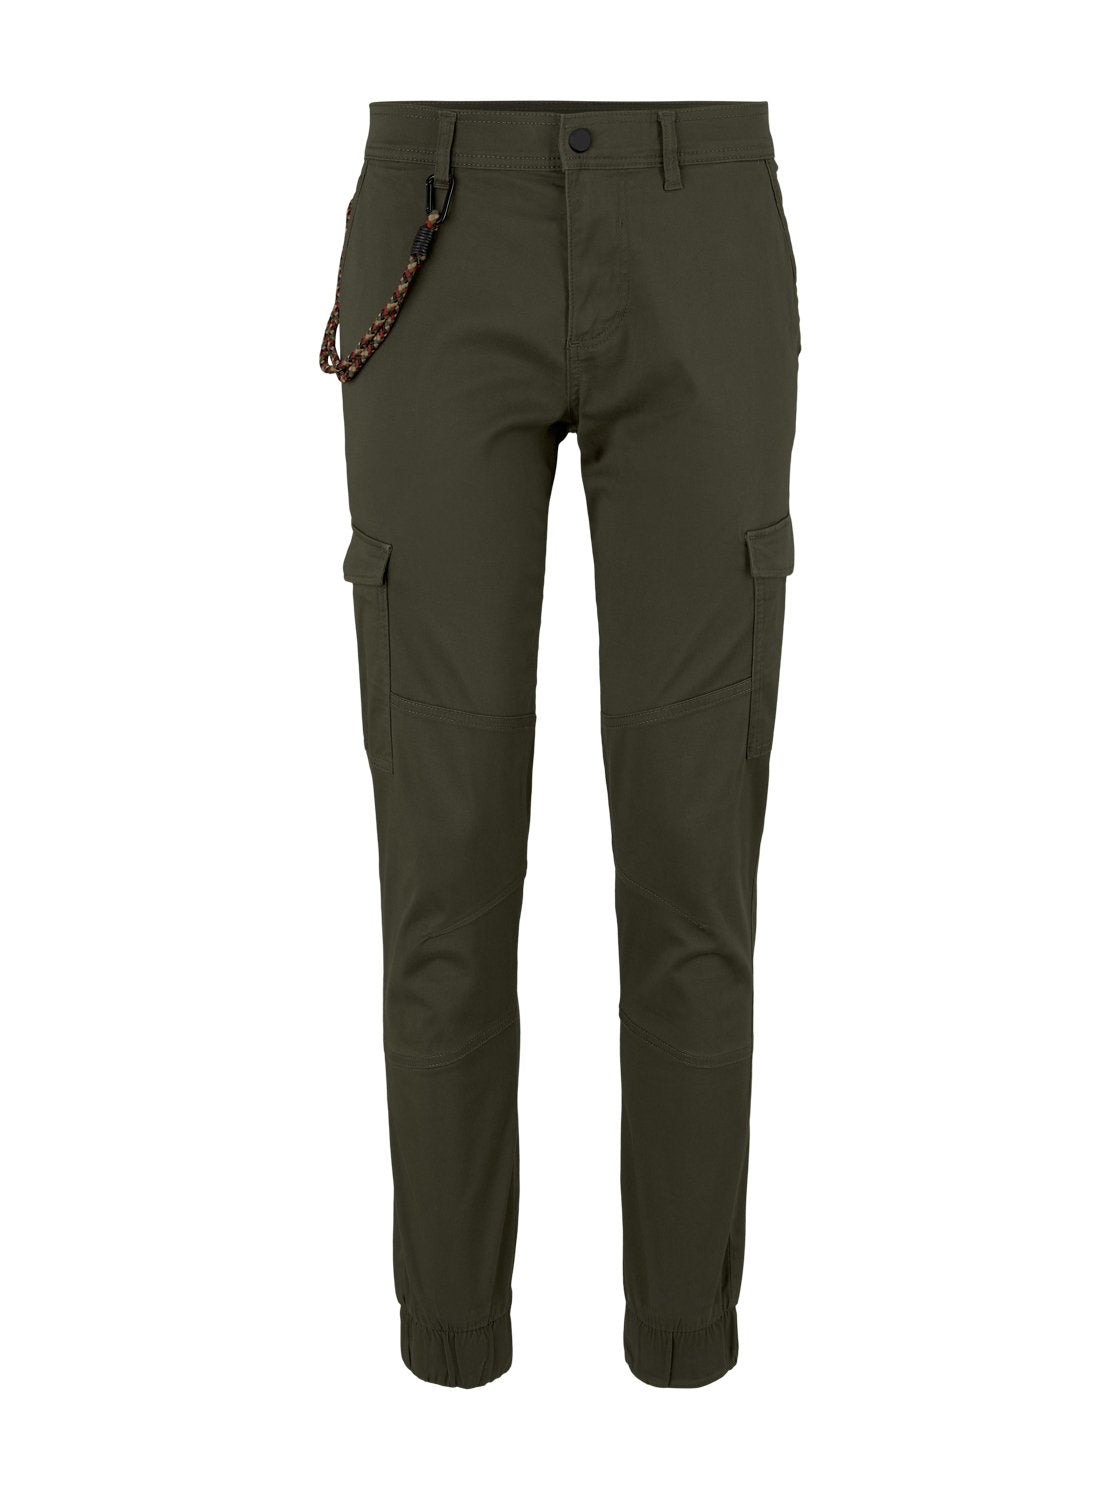 Tom Tailor men's cargo jogger 1020454